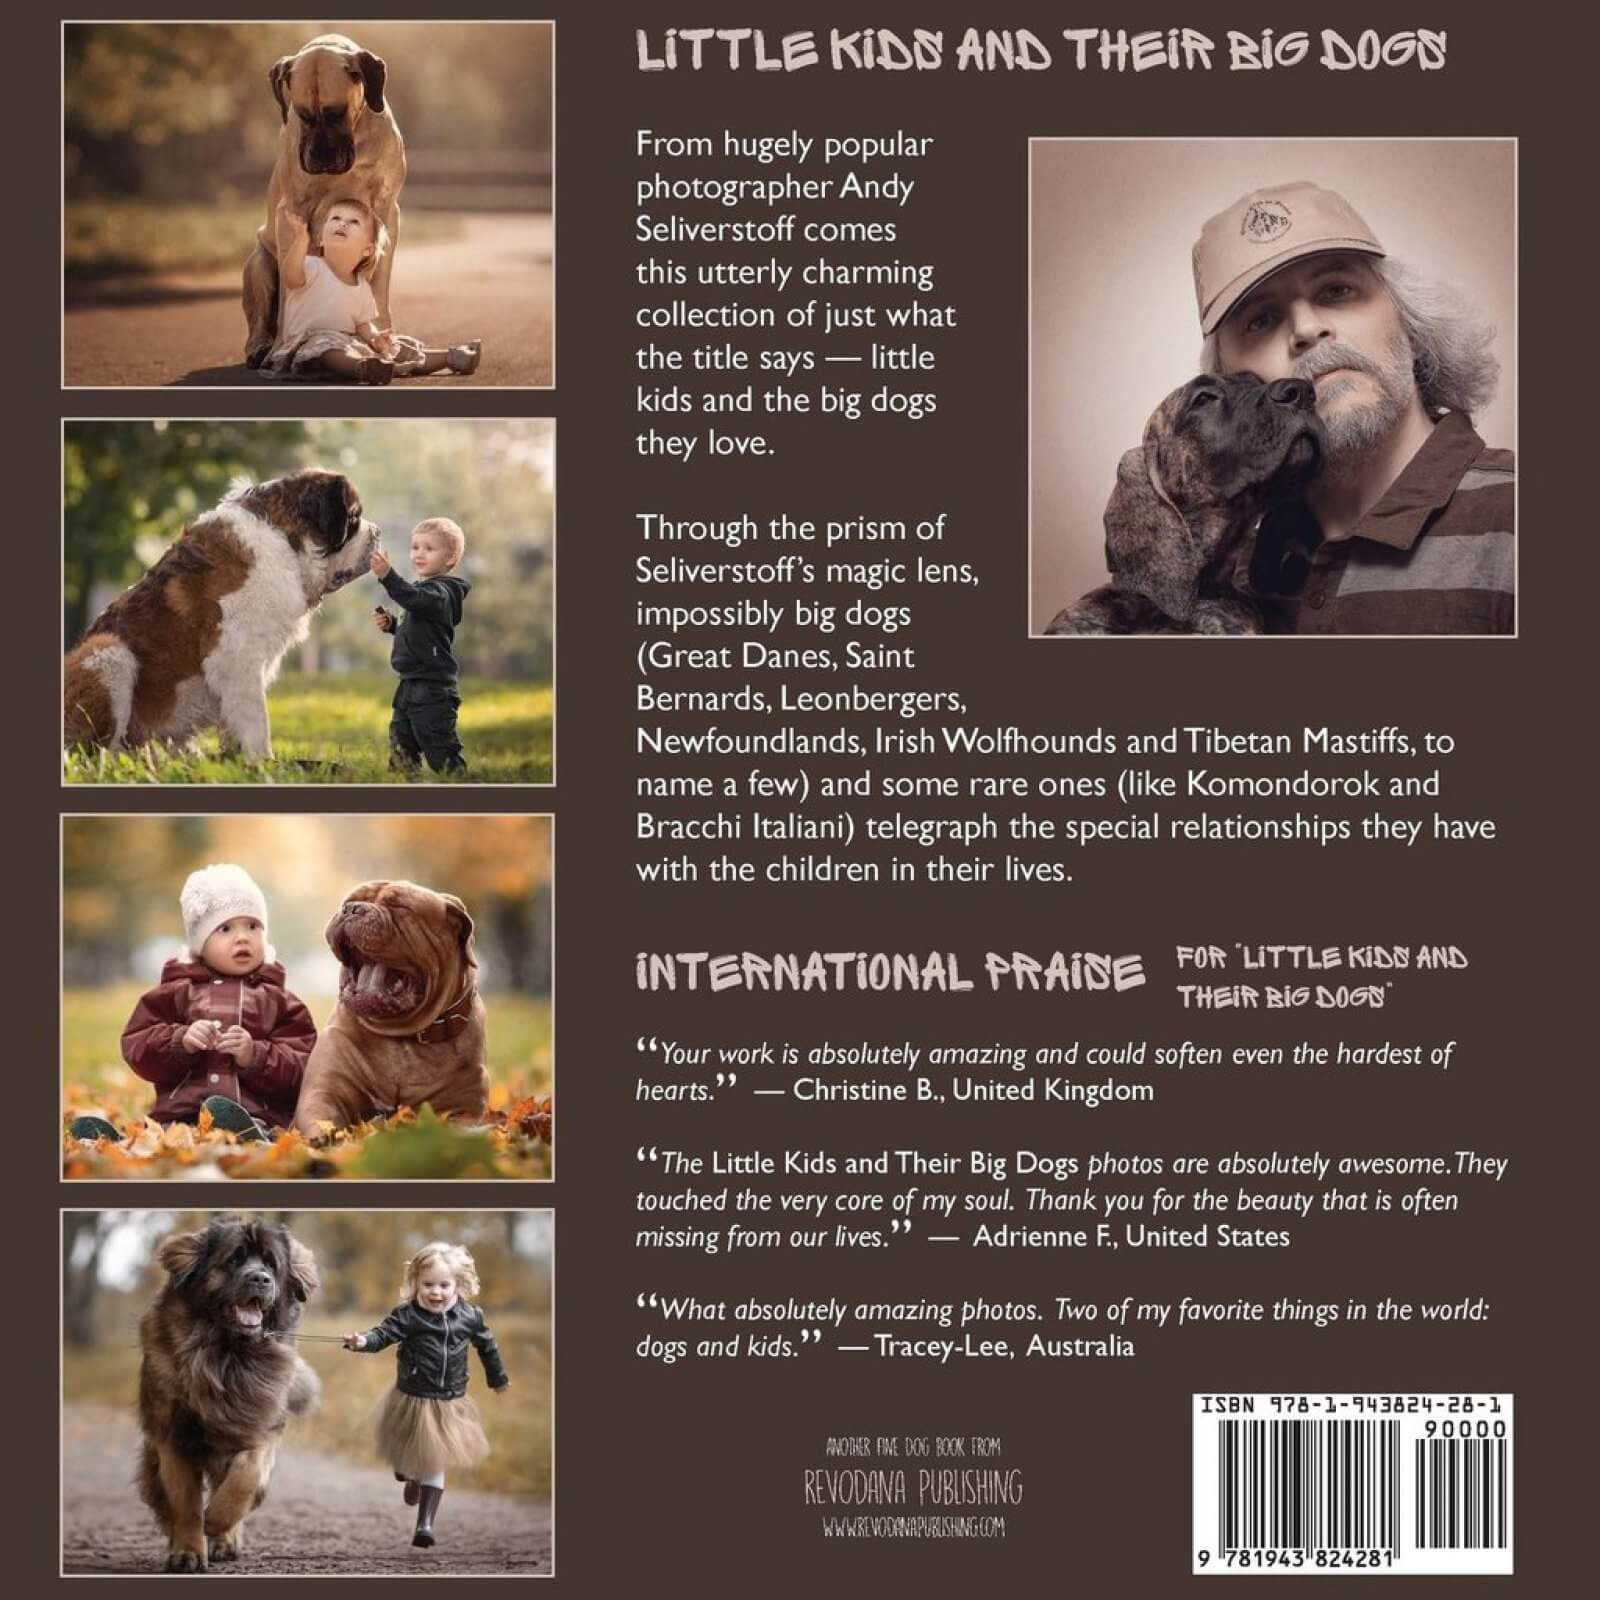 Little Kids and their Big Dogs Book Cover